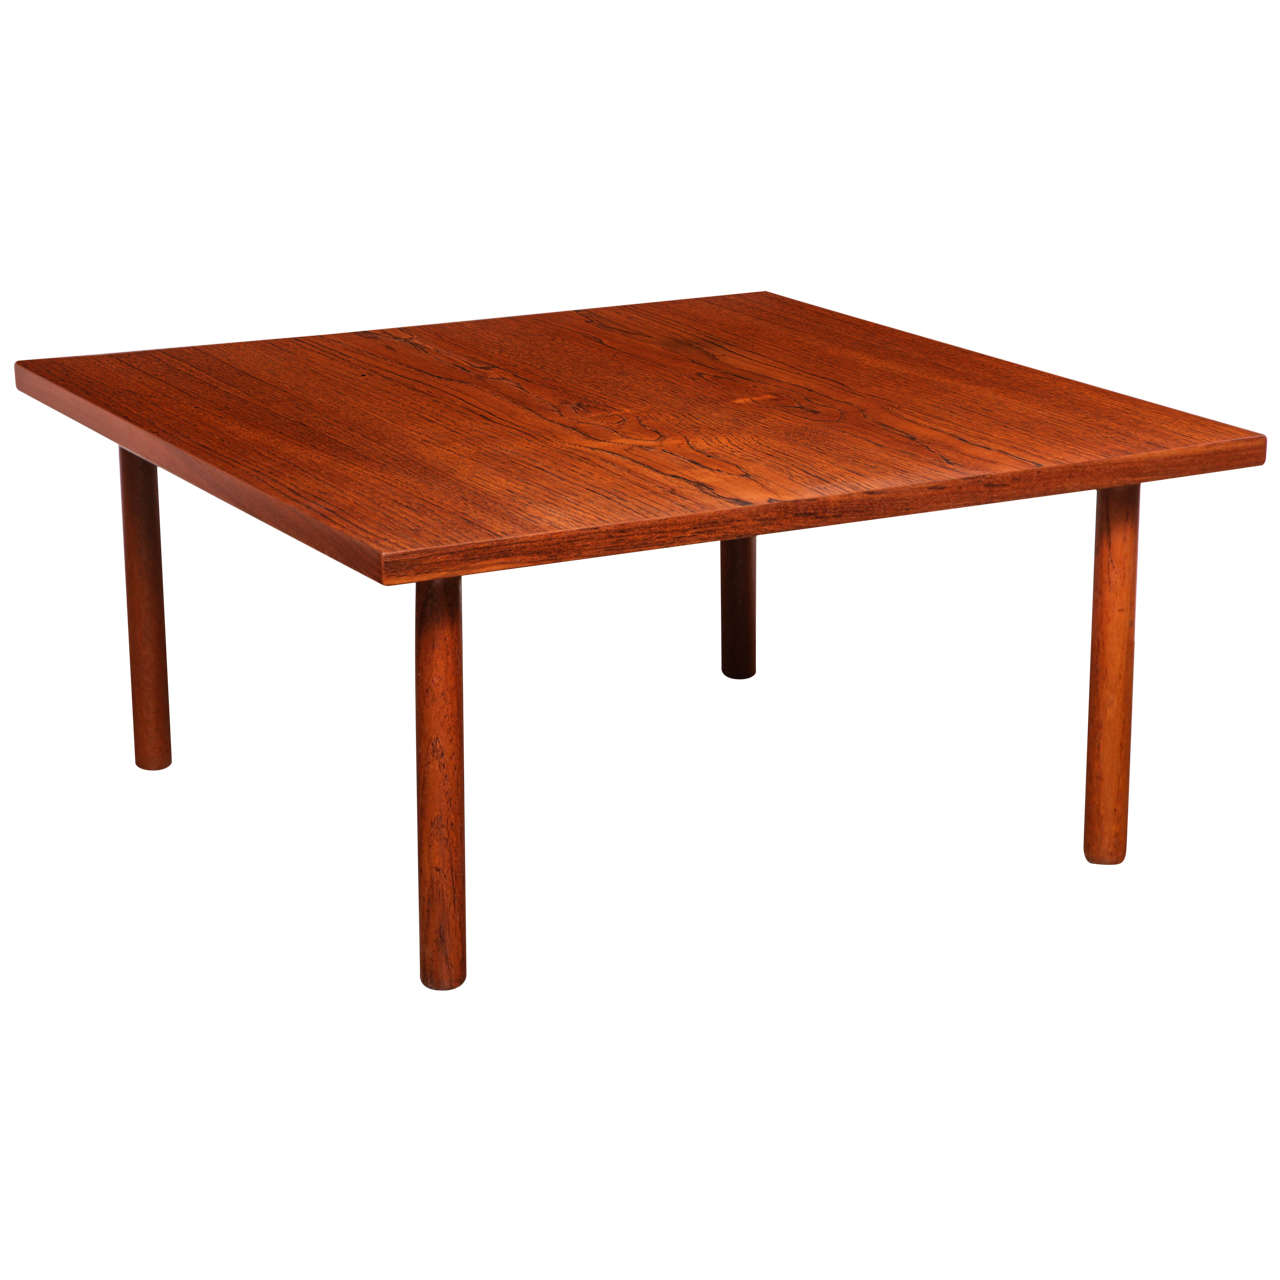 Hans Wegner Teak Side or Coffee Table by GETAMA, 1960s For Sale